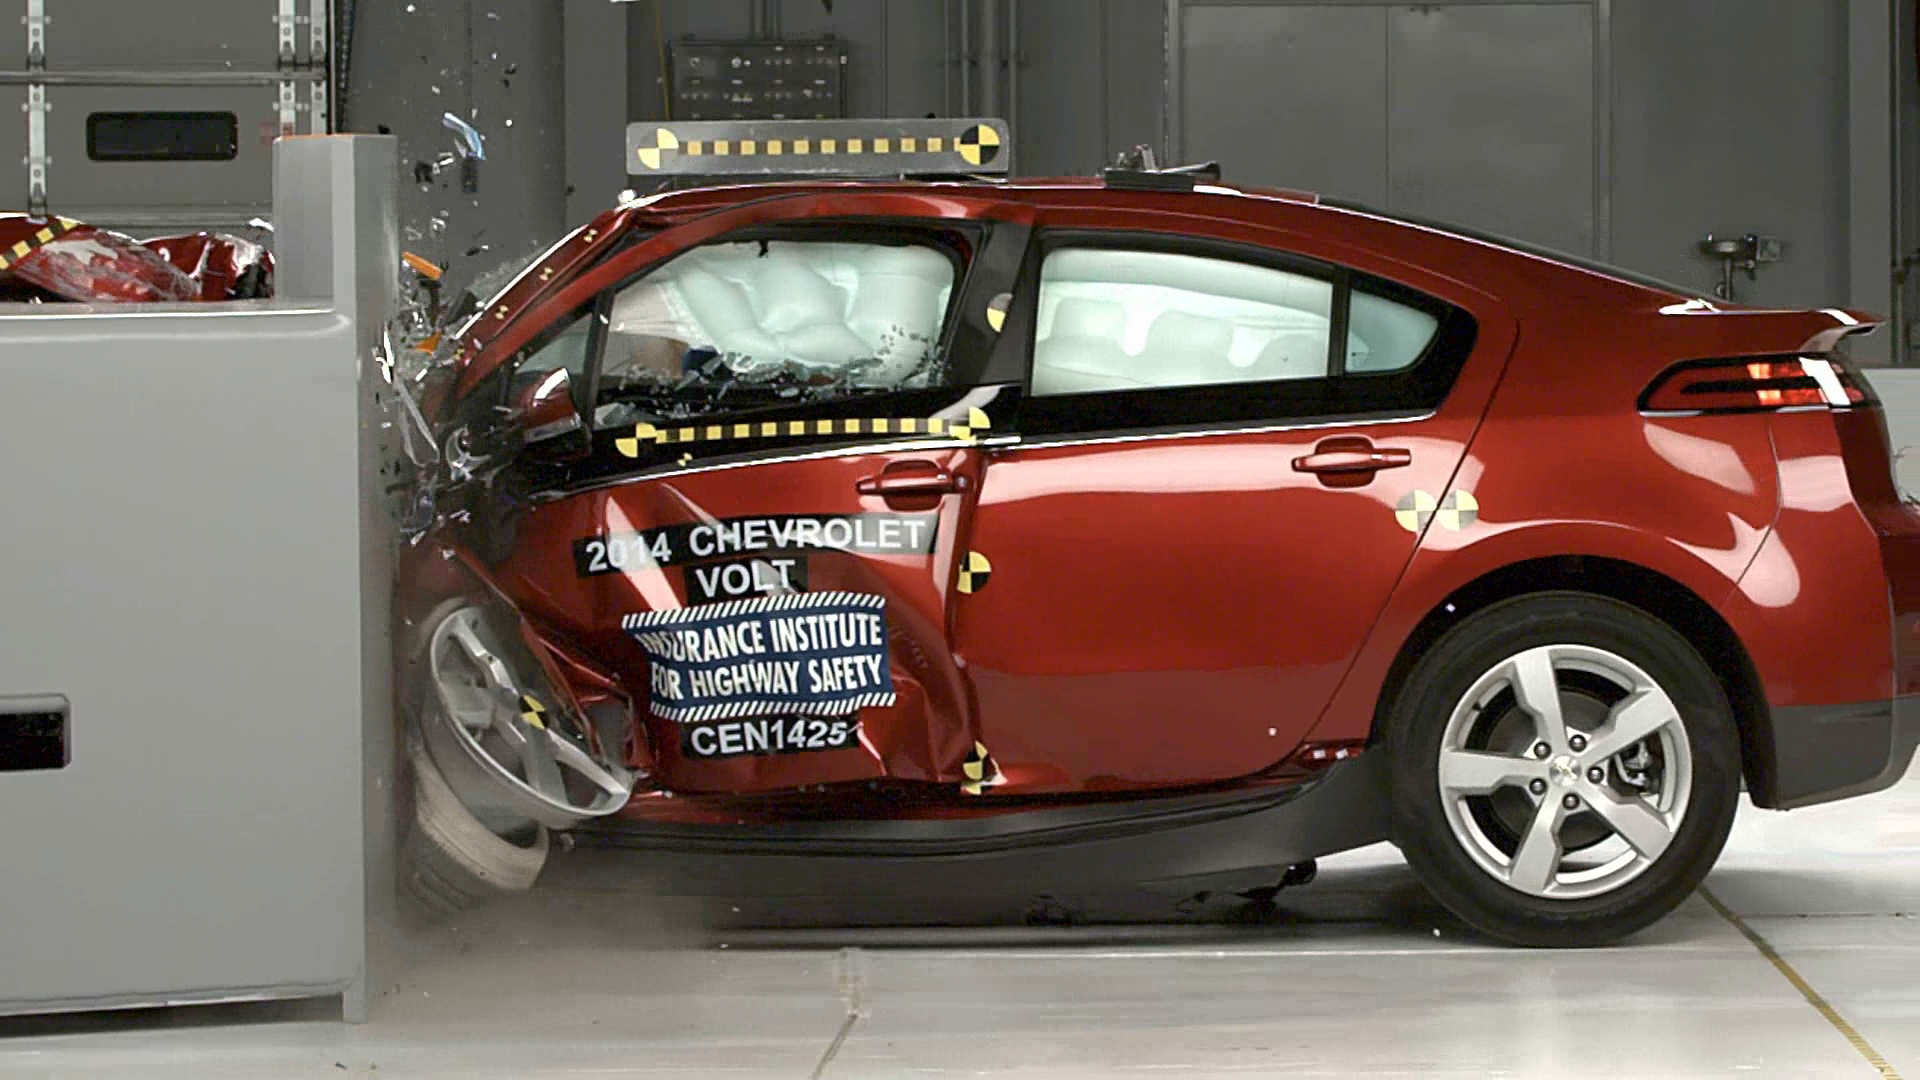 Chevrolet Volt Earns IIHS Top Safety Pick + Award | 3BL Media